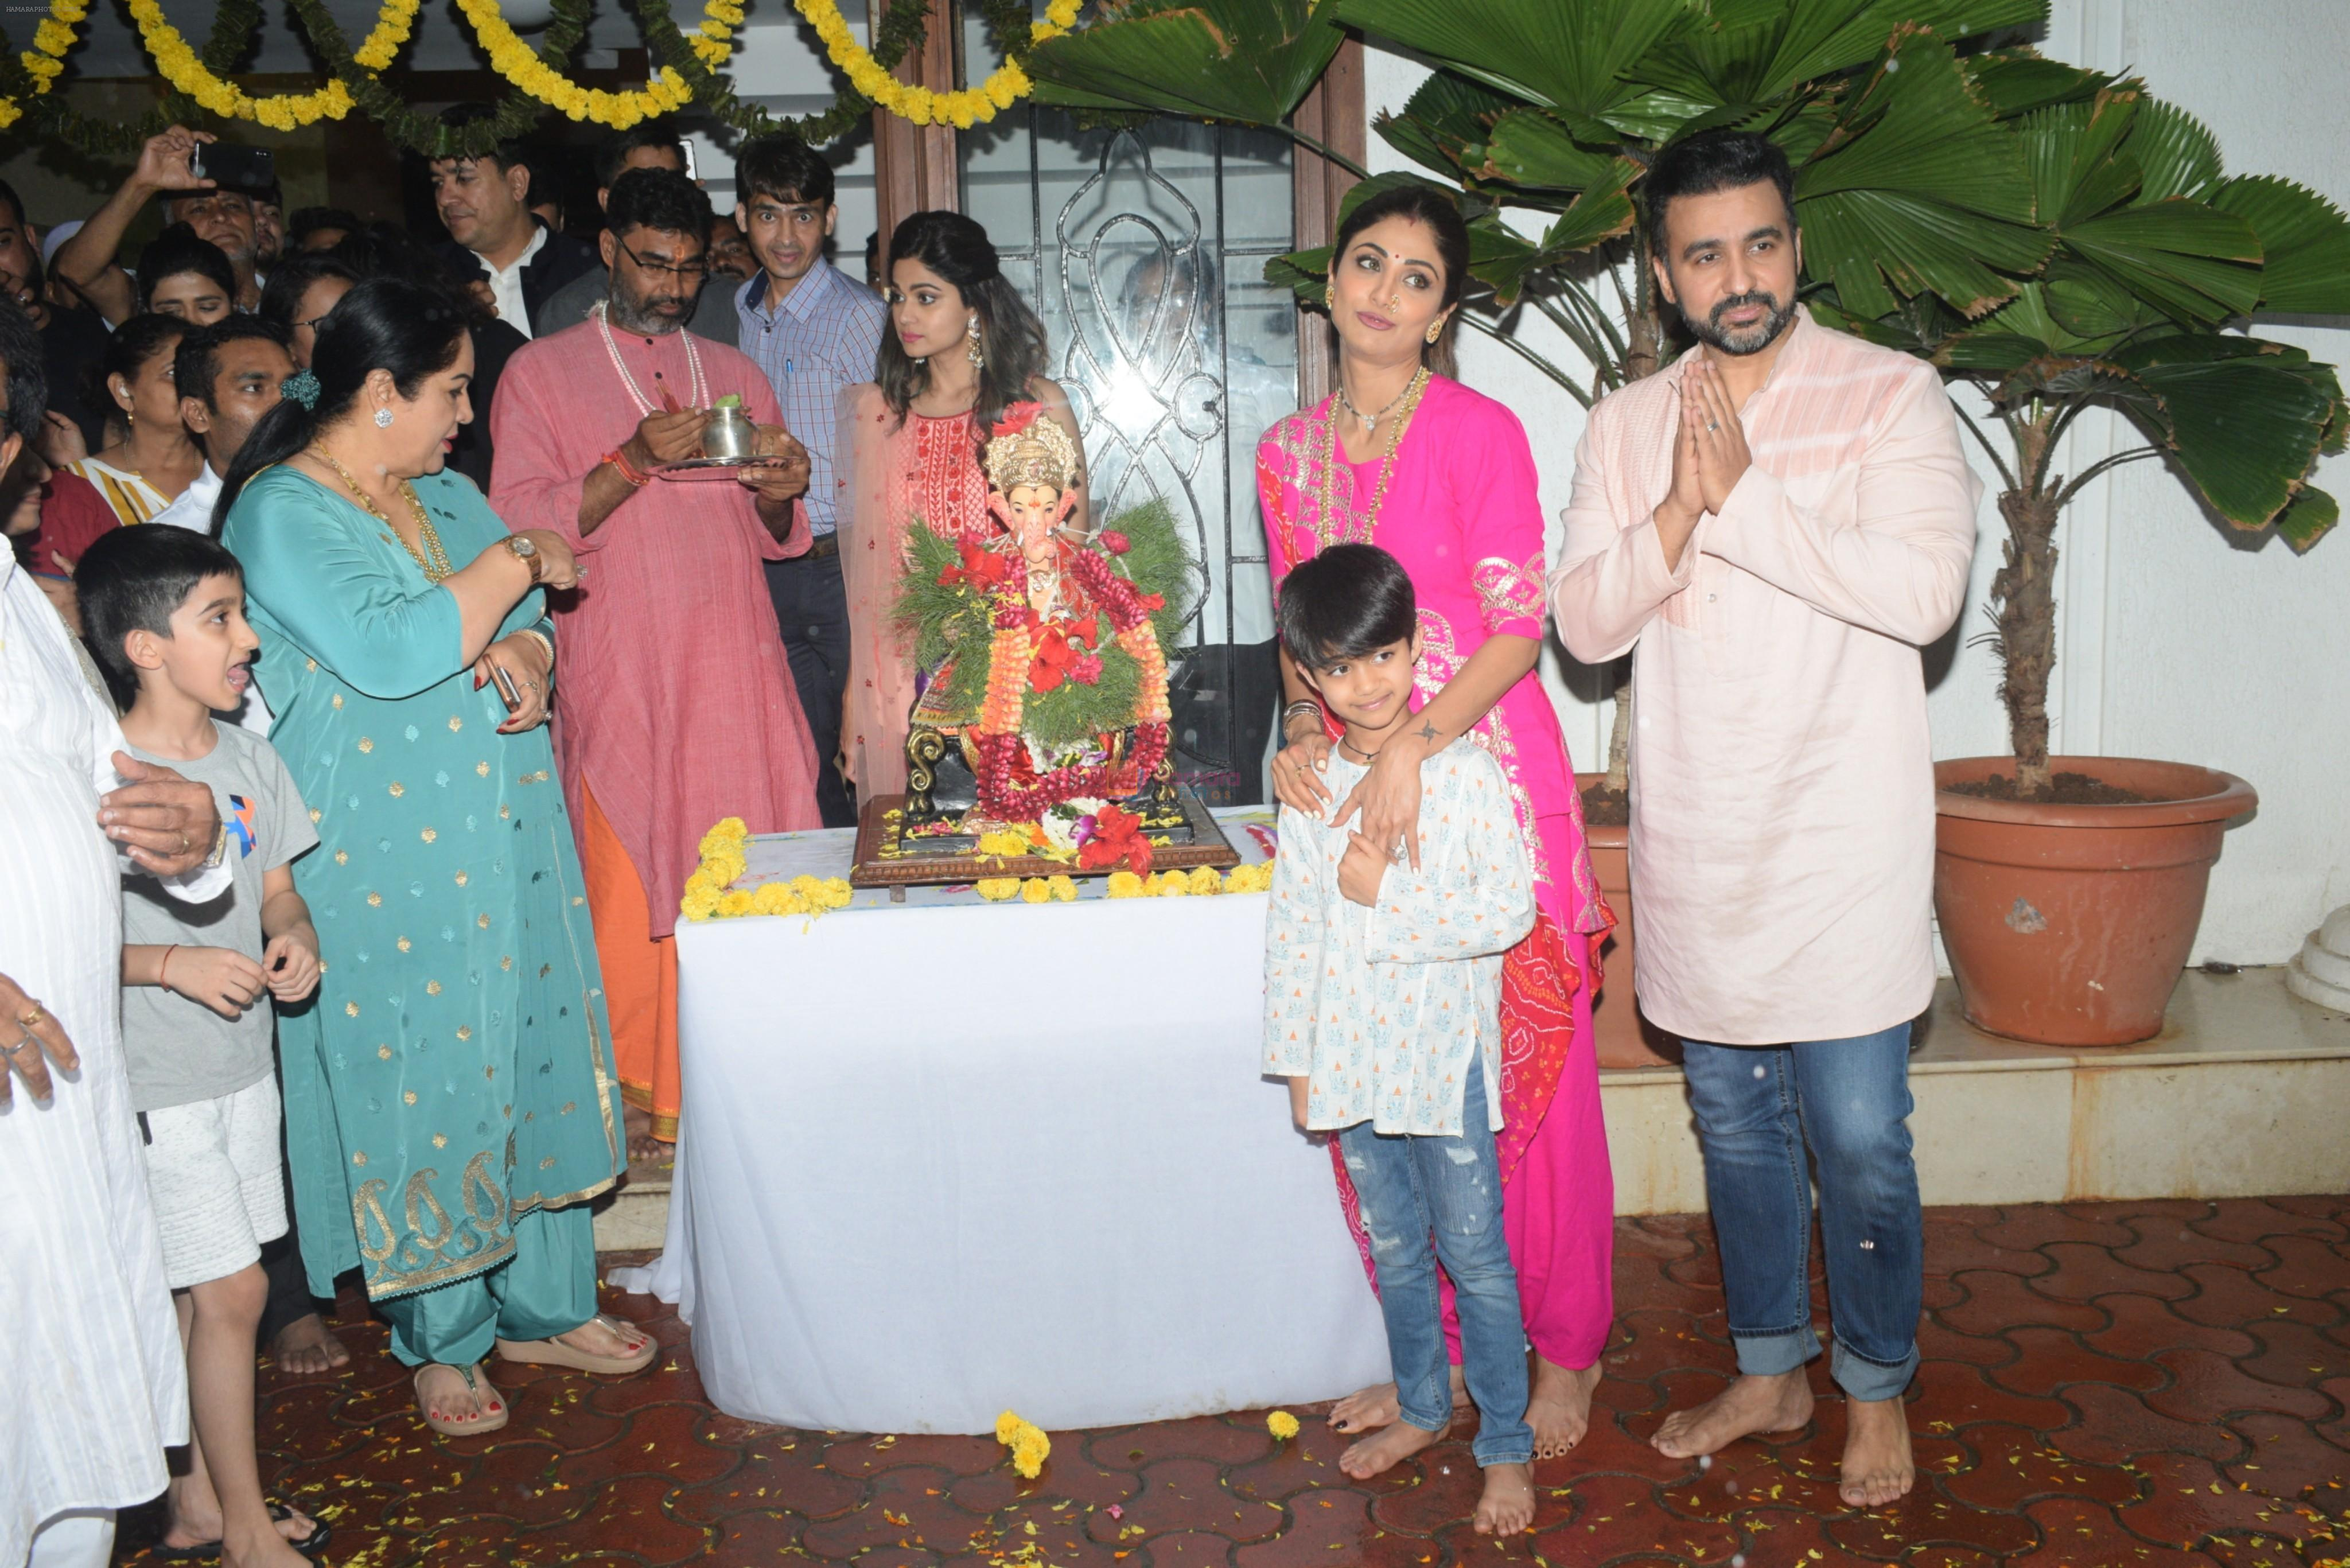 Shilpa Shetty ganpati Visarjan at juhu on 3rd Sept 2019